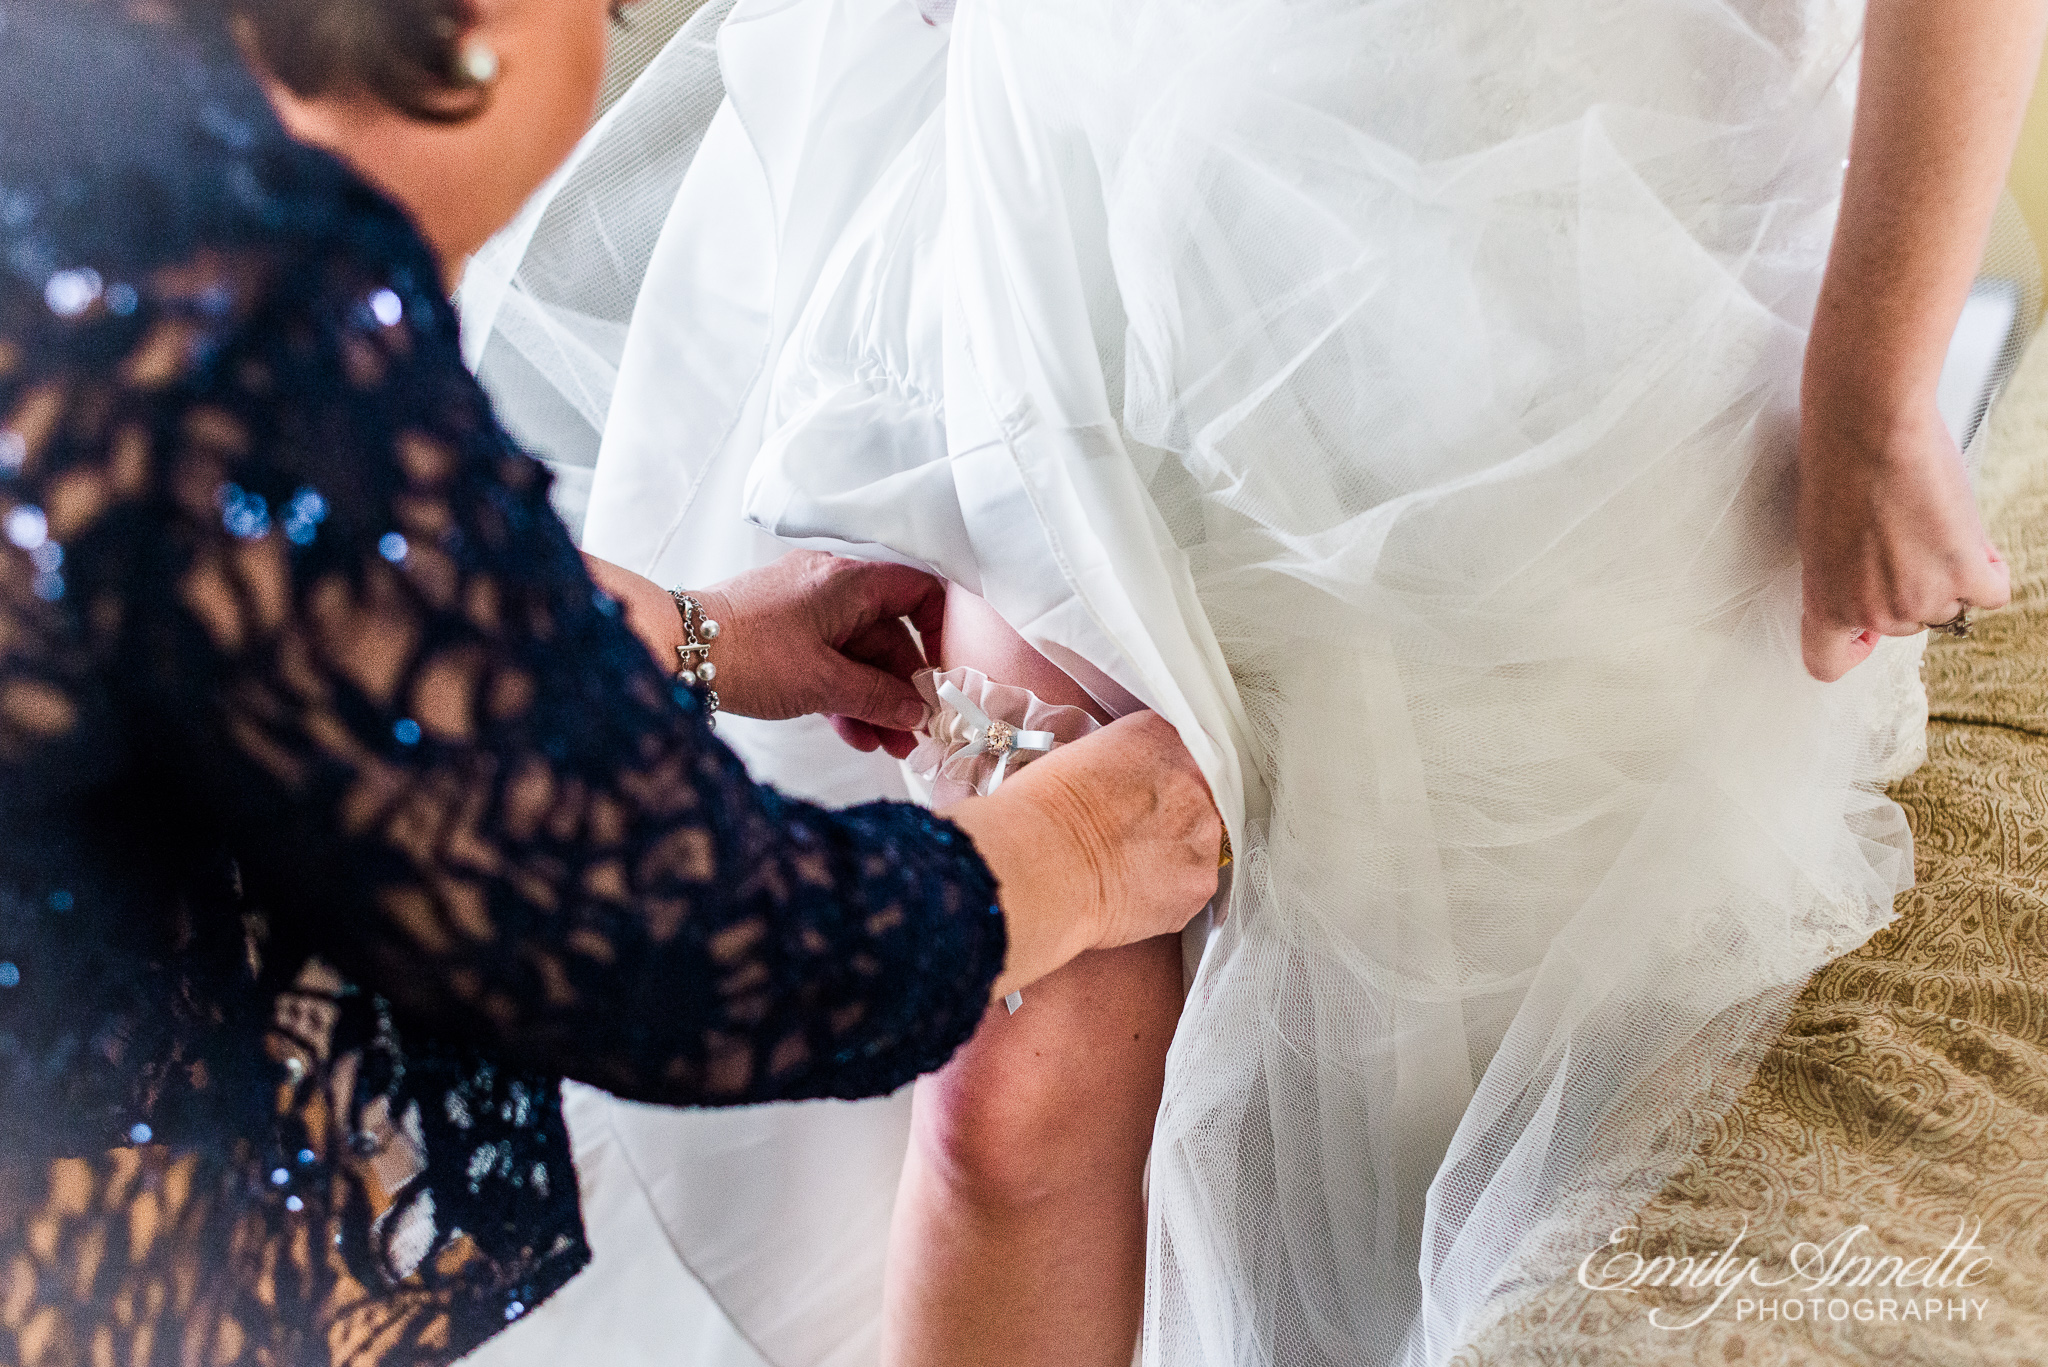 The mother of the bride helps her put on her garter before her wedding ceremony at Amber Grove near Richmond, Virginia